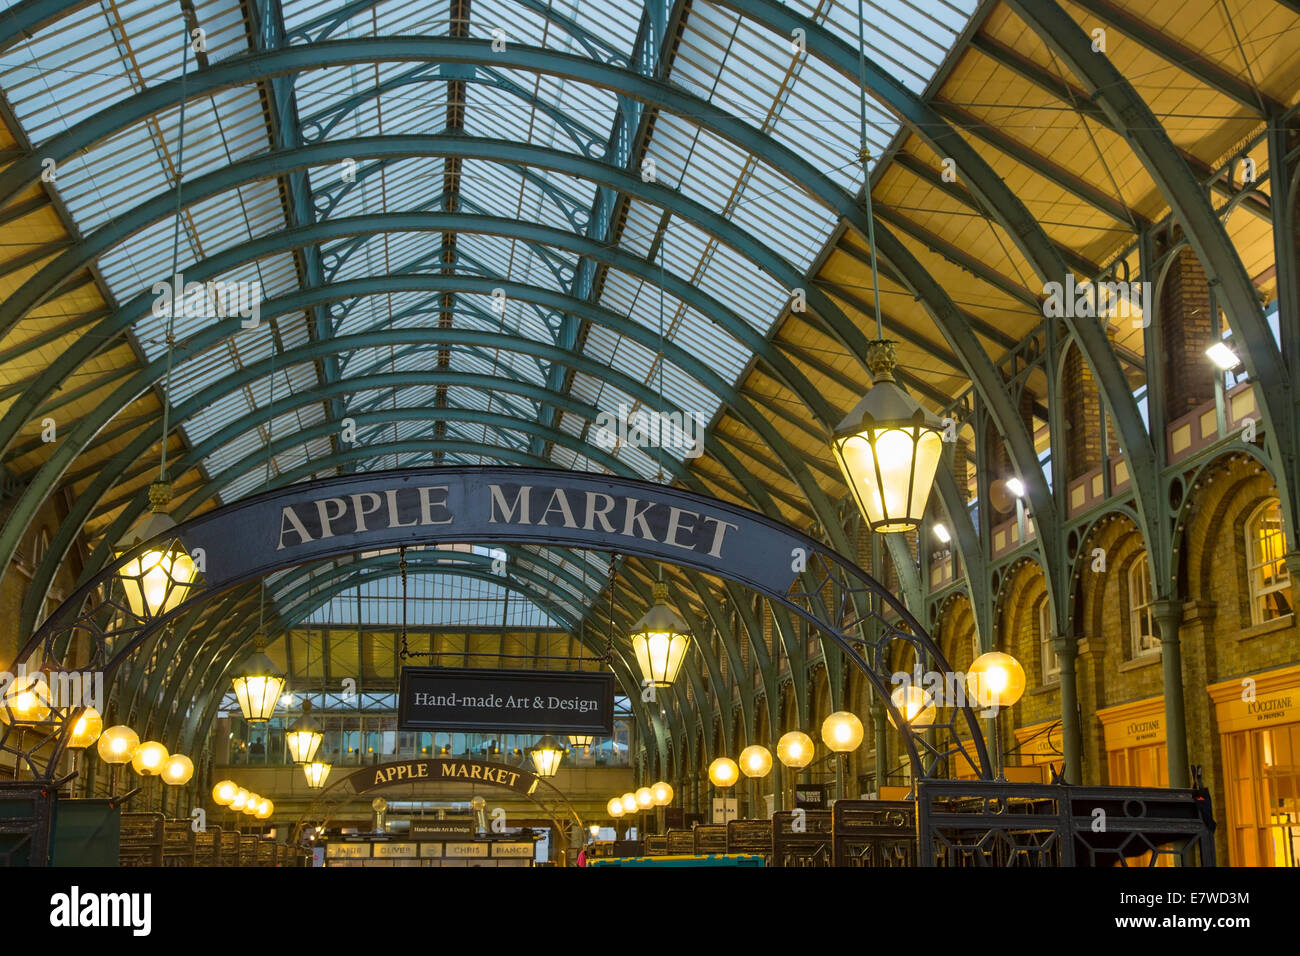 covent garden stockfotos covent garden bilder alamy. Black Bedroom Furniture Sets. Home Design Ideas